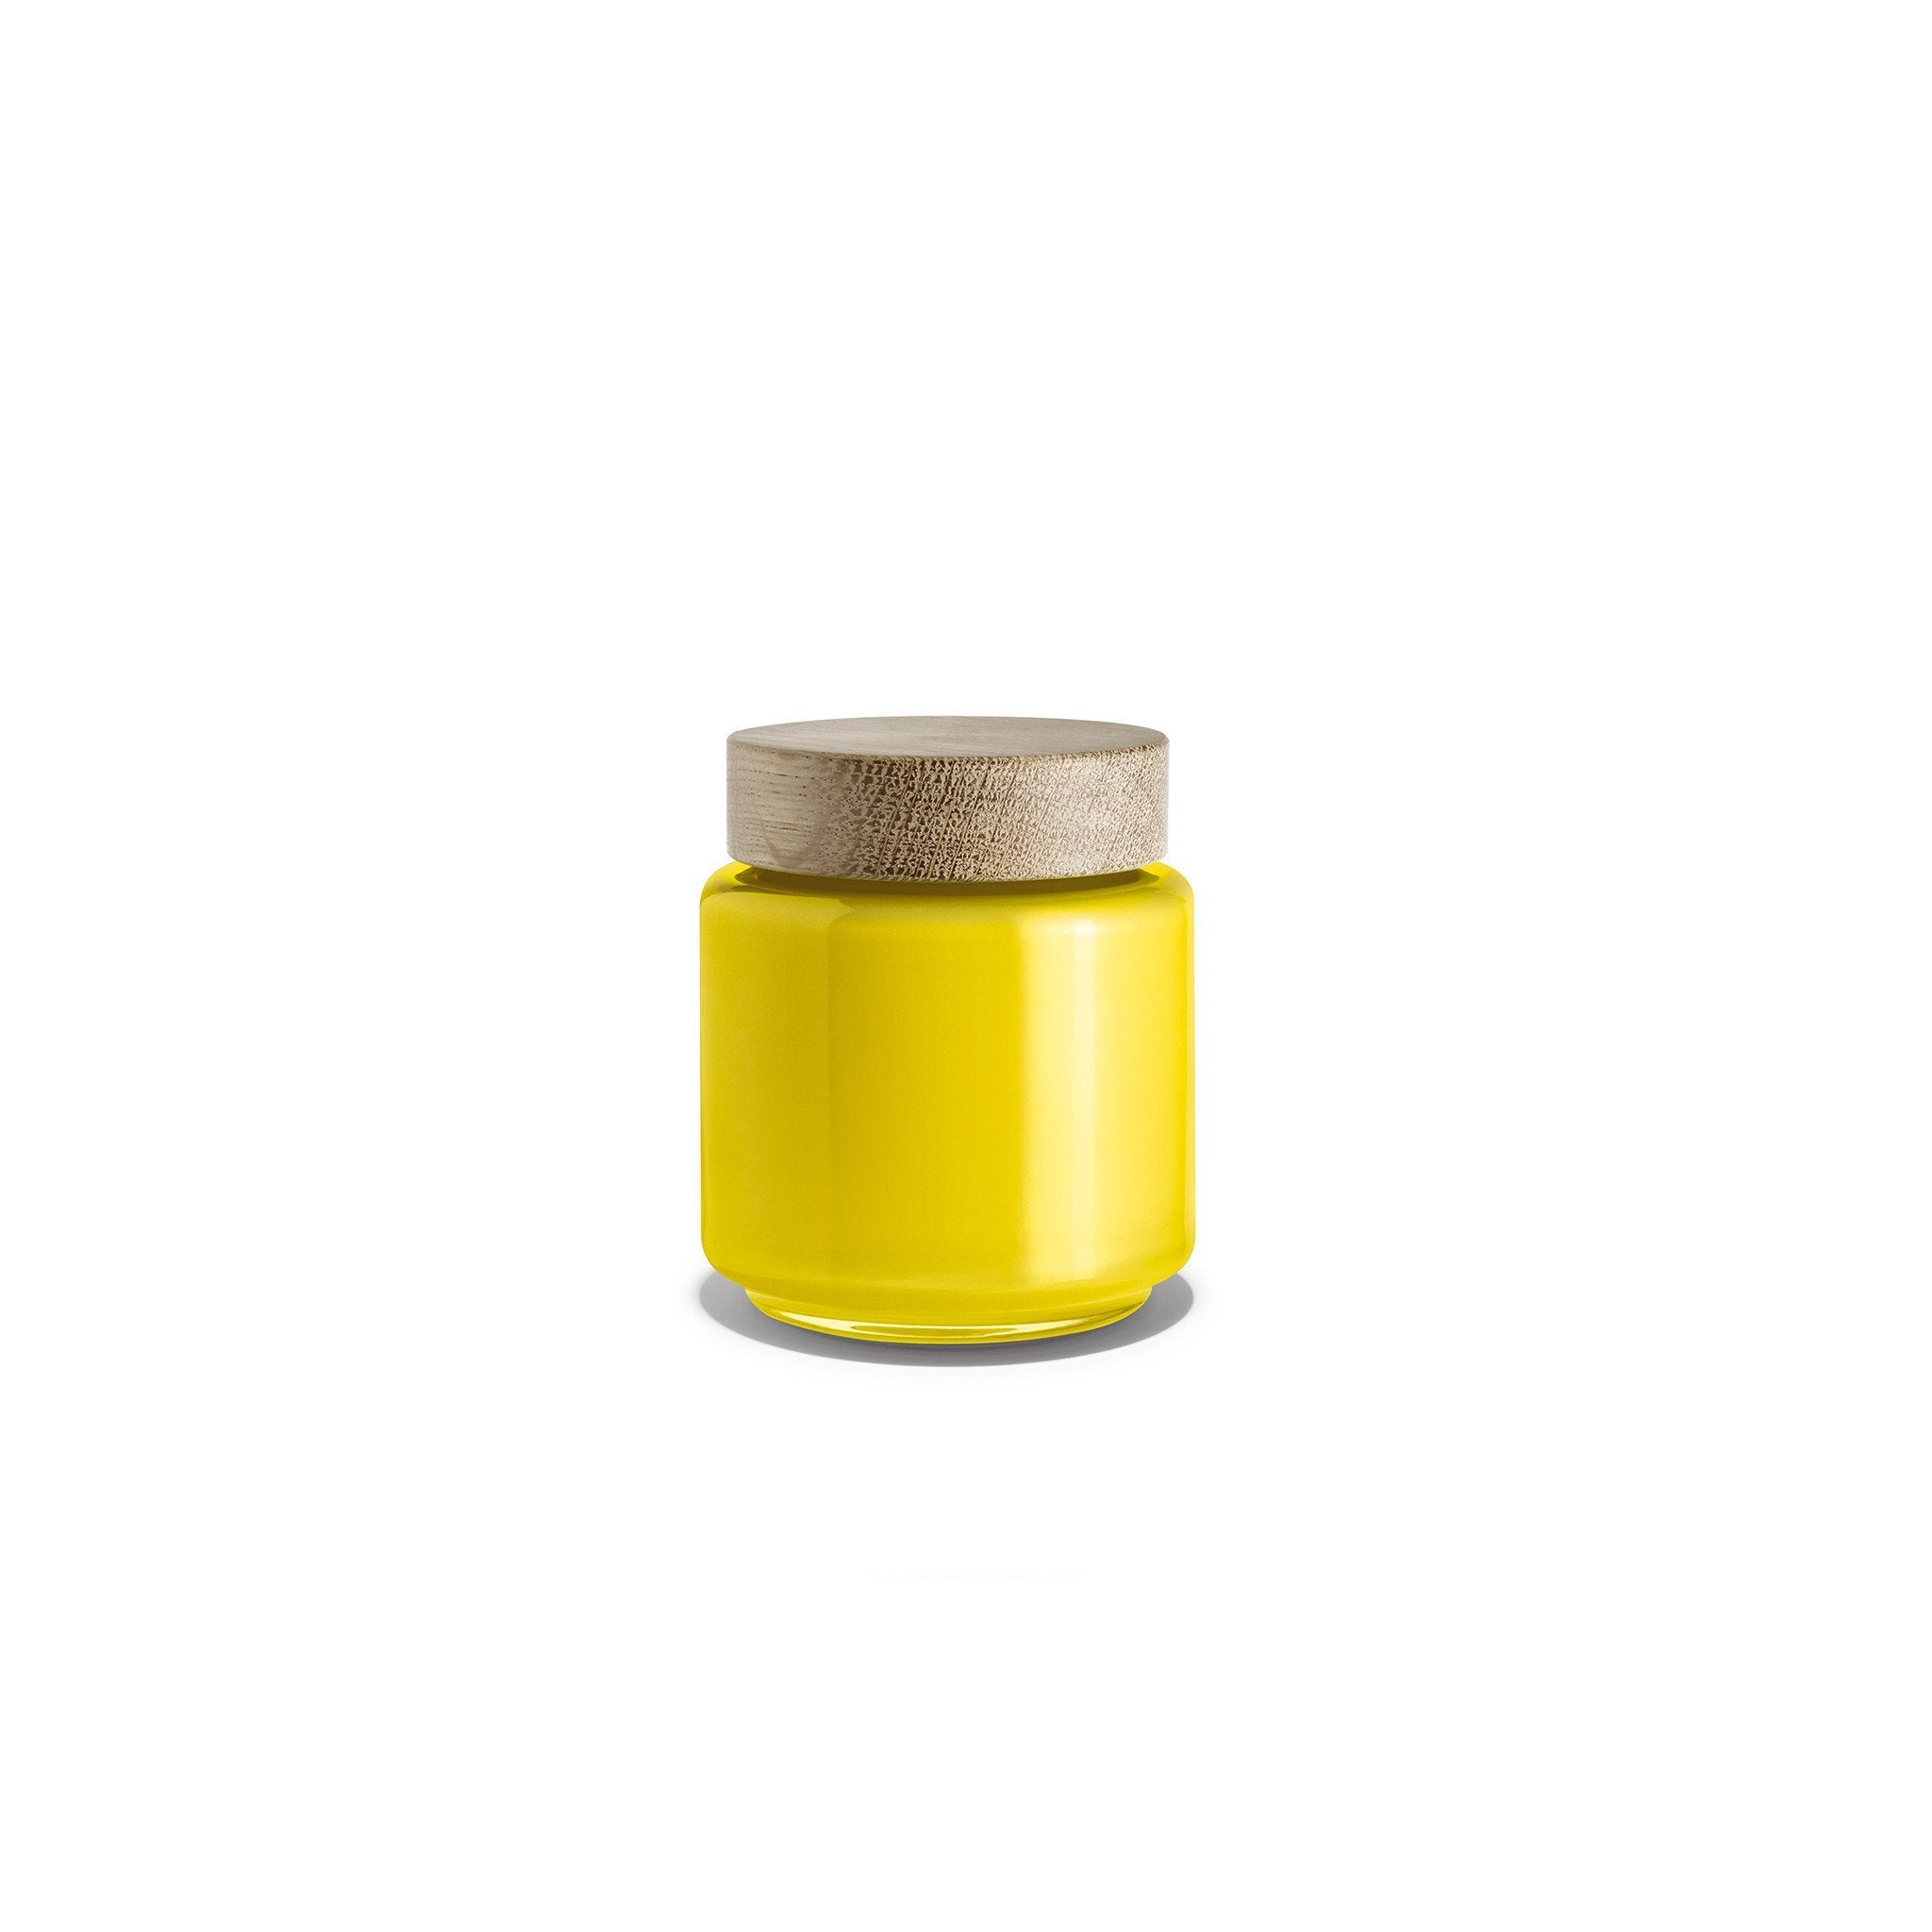 Palet Storage Jar, Yellow, 0.5 Qt.